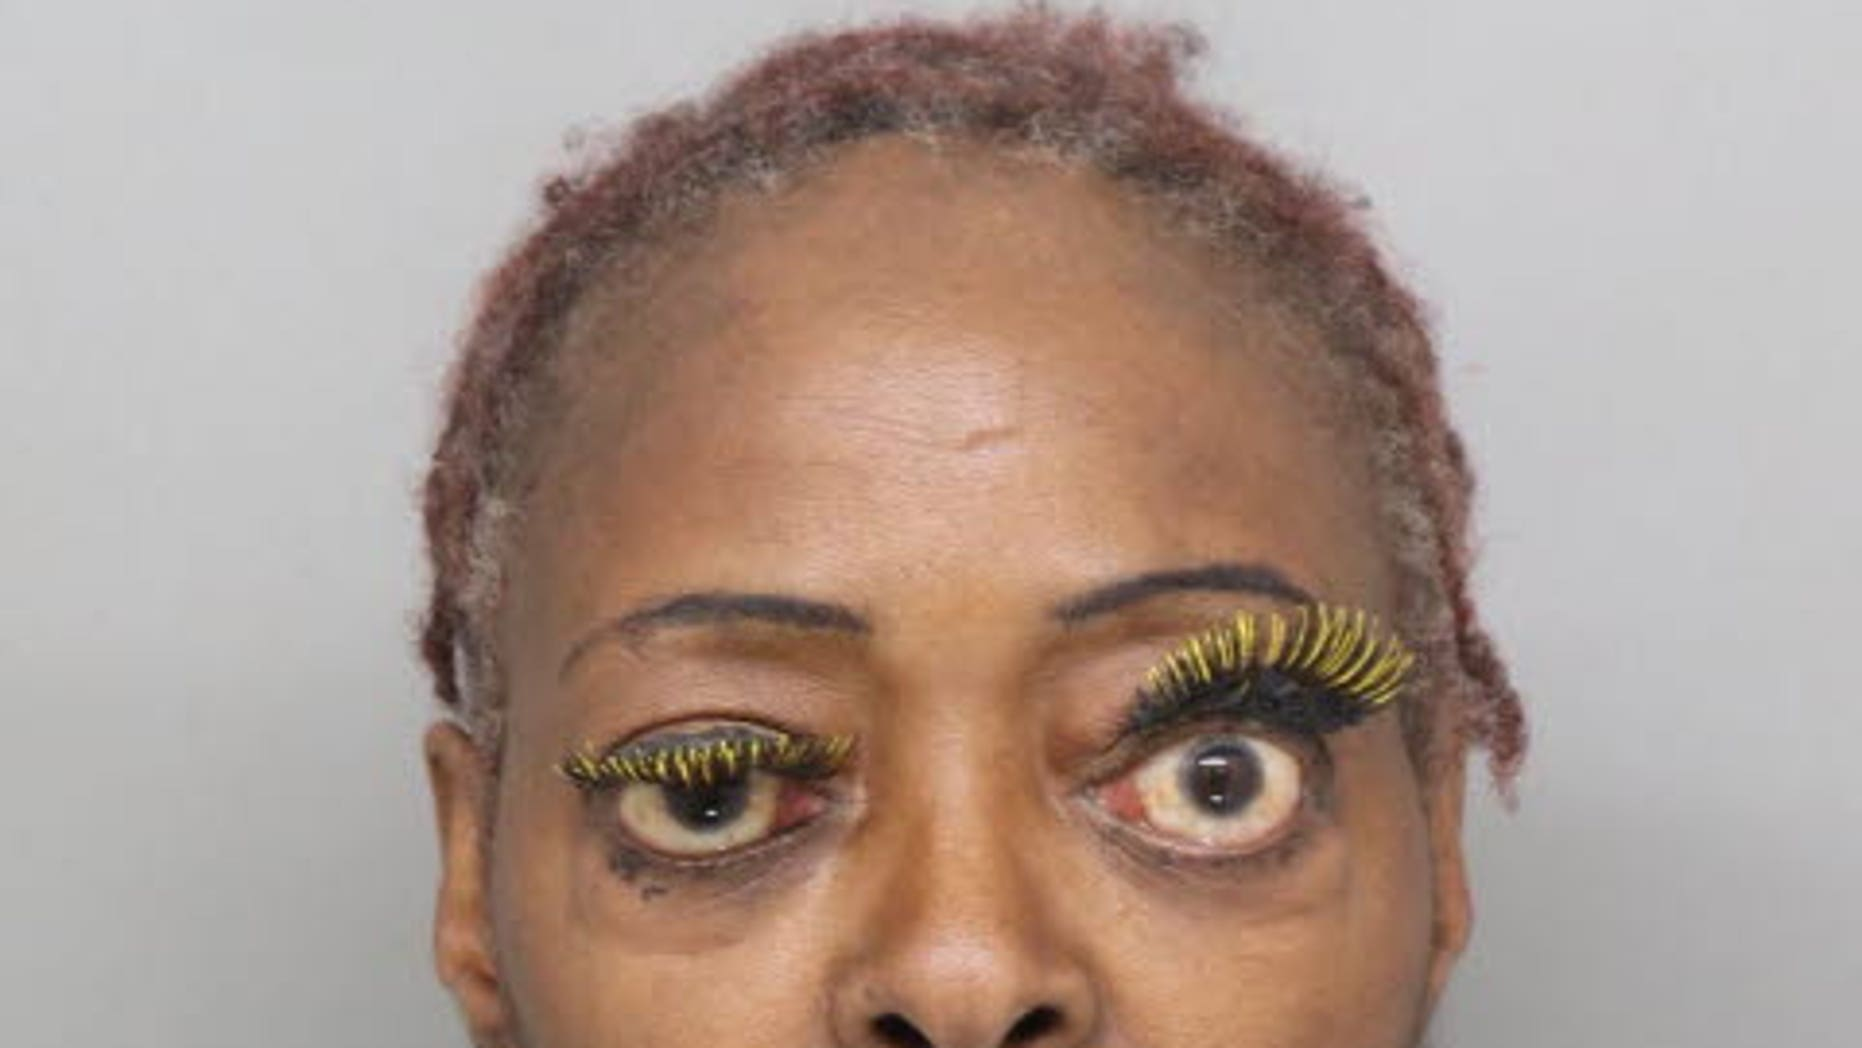 Charlene Thompson, 61, allegedly pours another woman with hot fat during a rally.